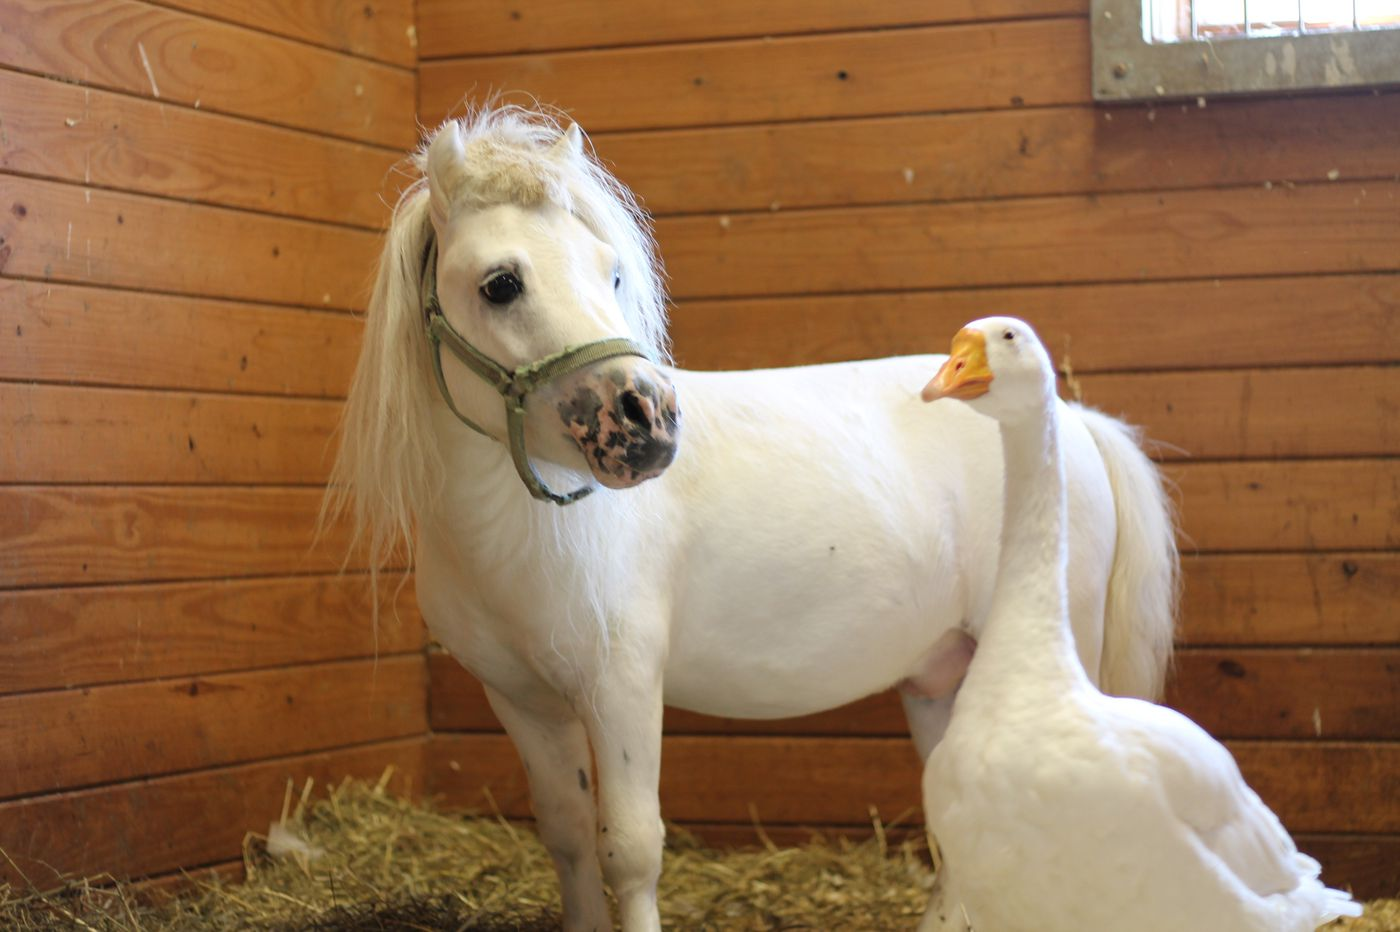 Waffles and Hemingway, inseparable miniature horse and goose, get adopted together